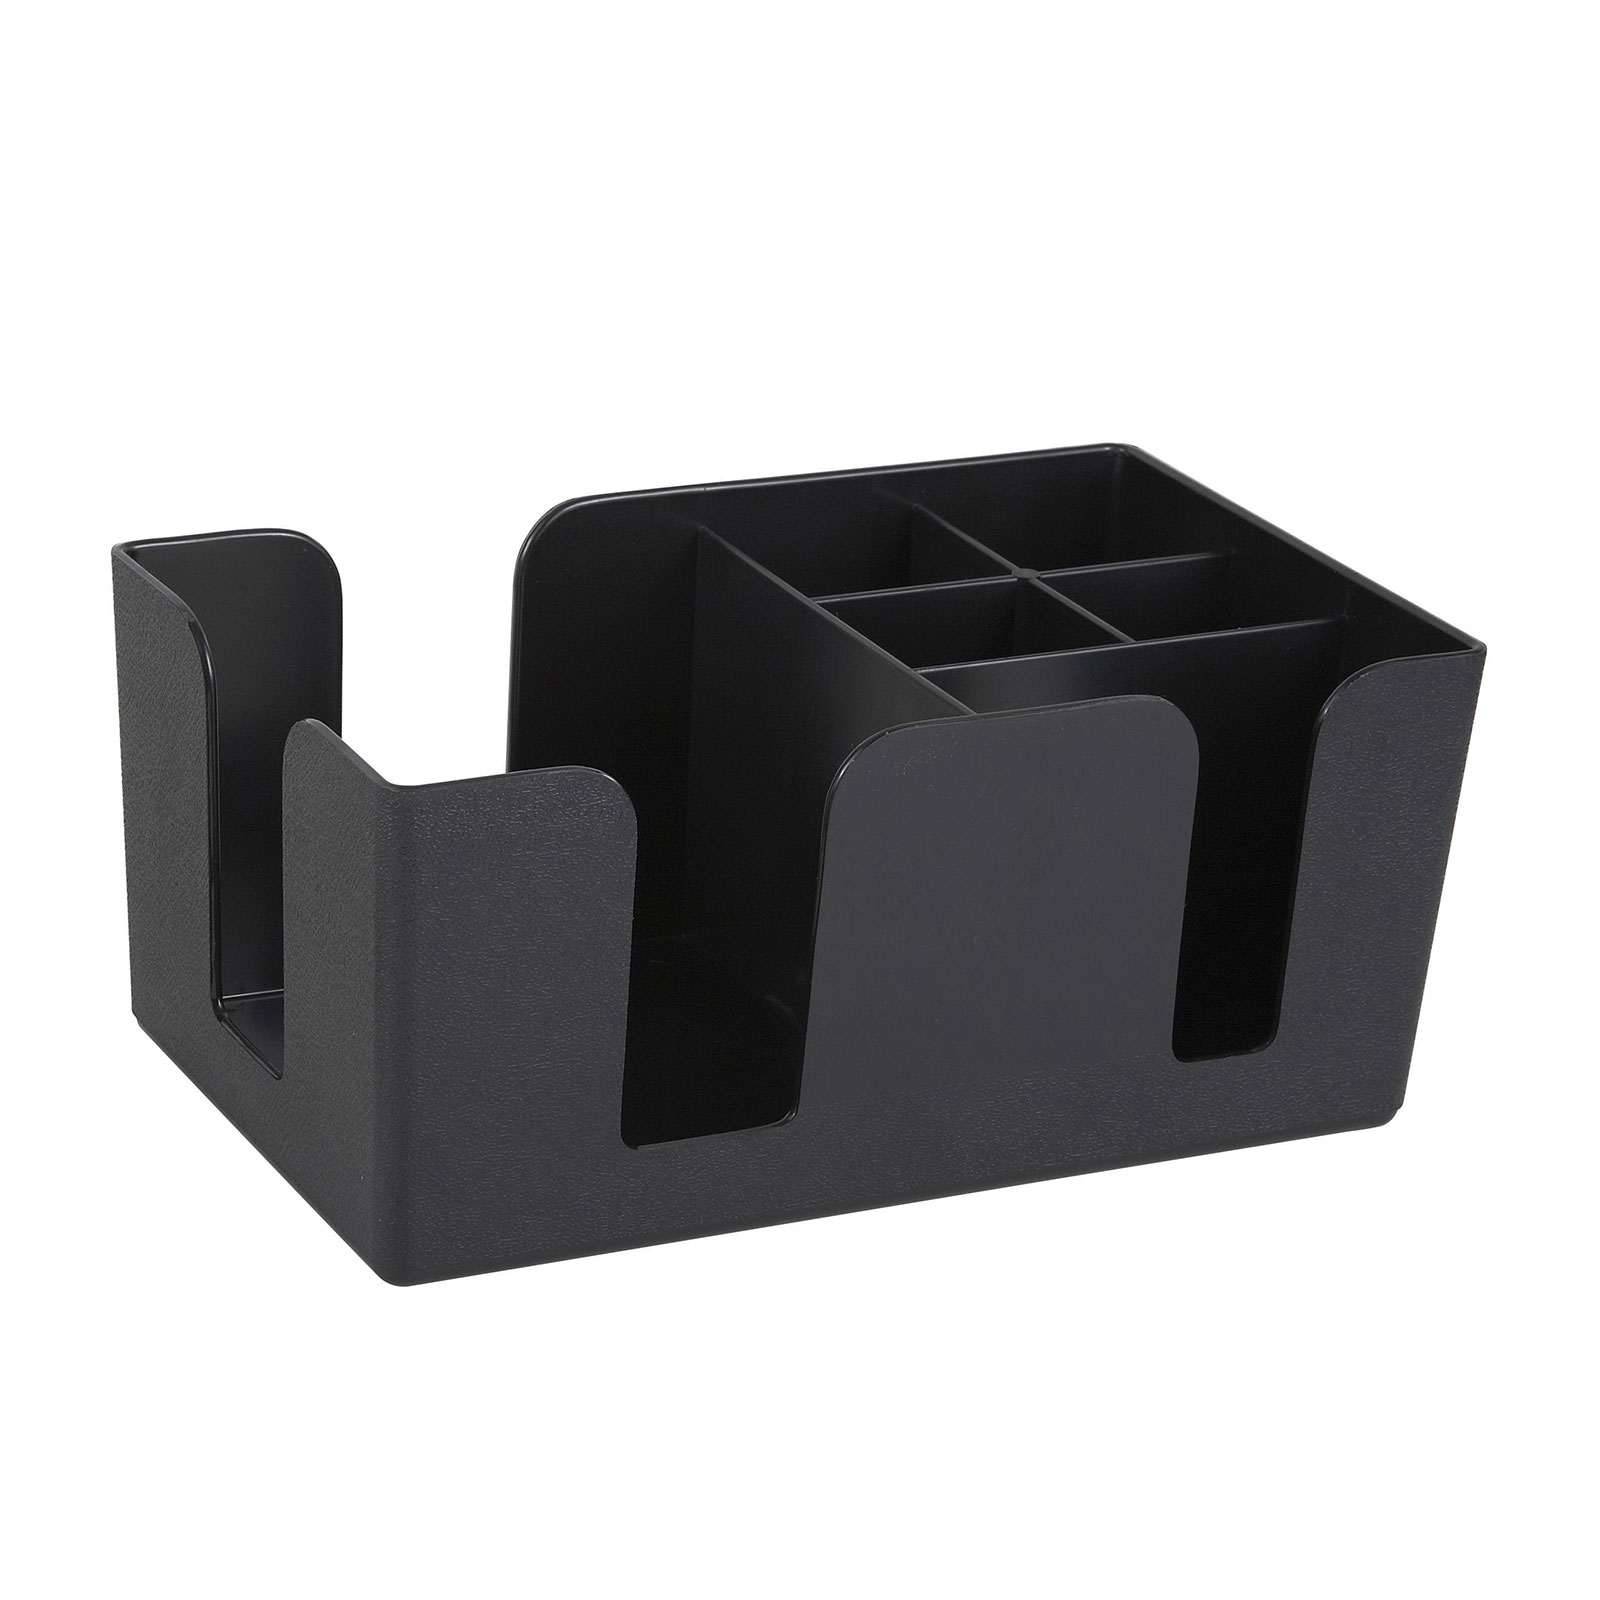 Winco BC-6 bar caddy